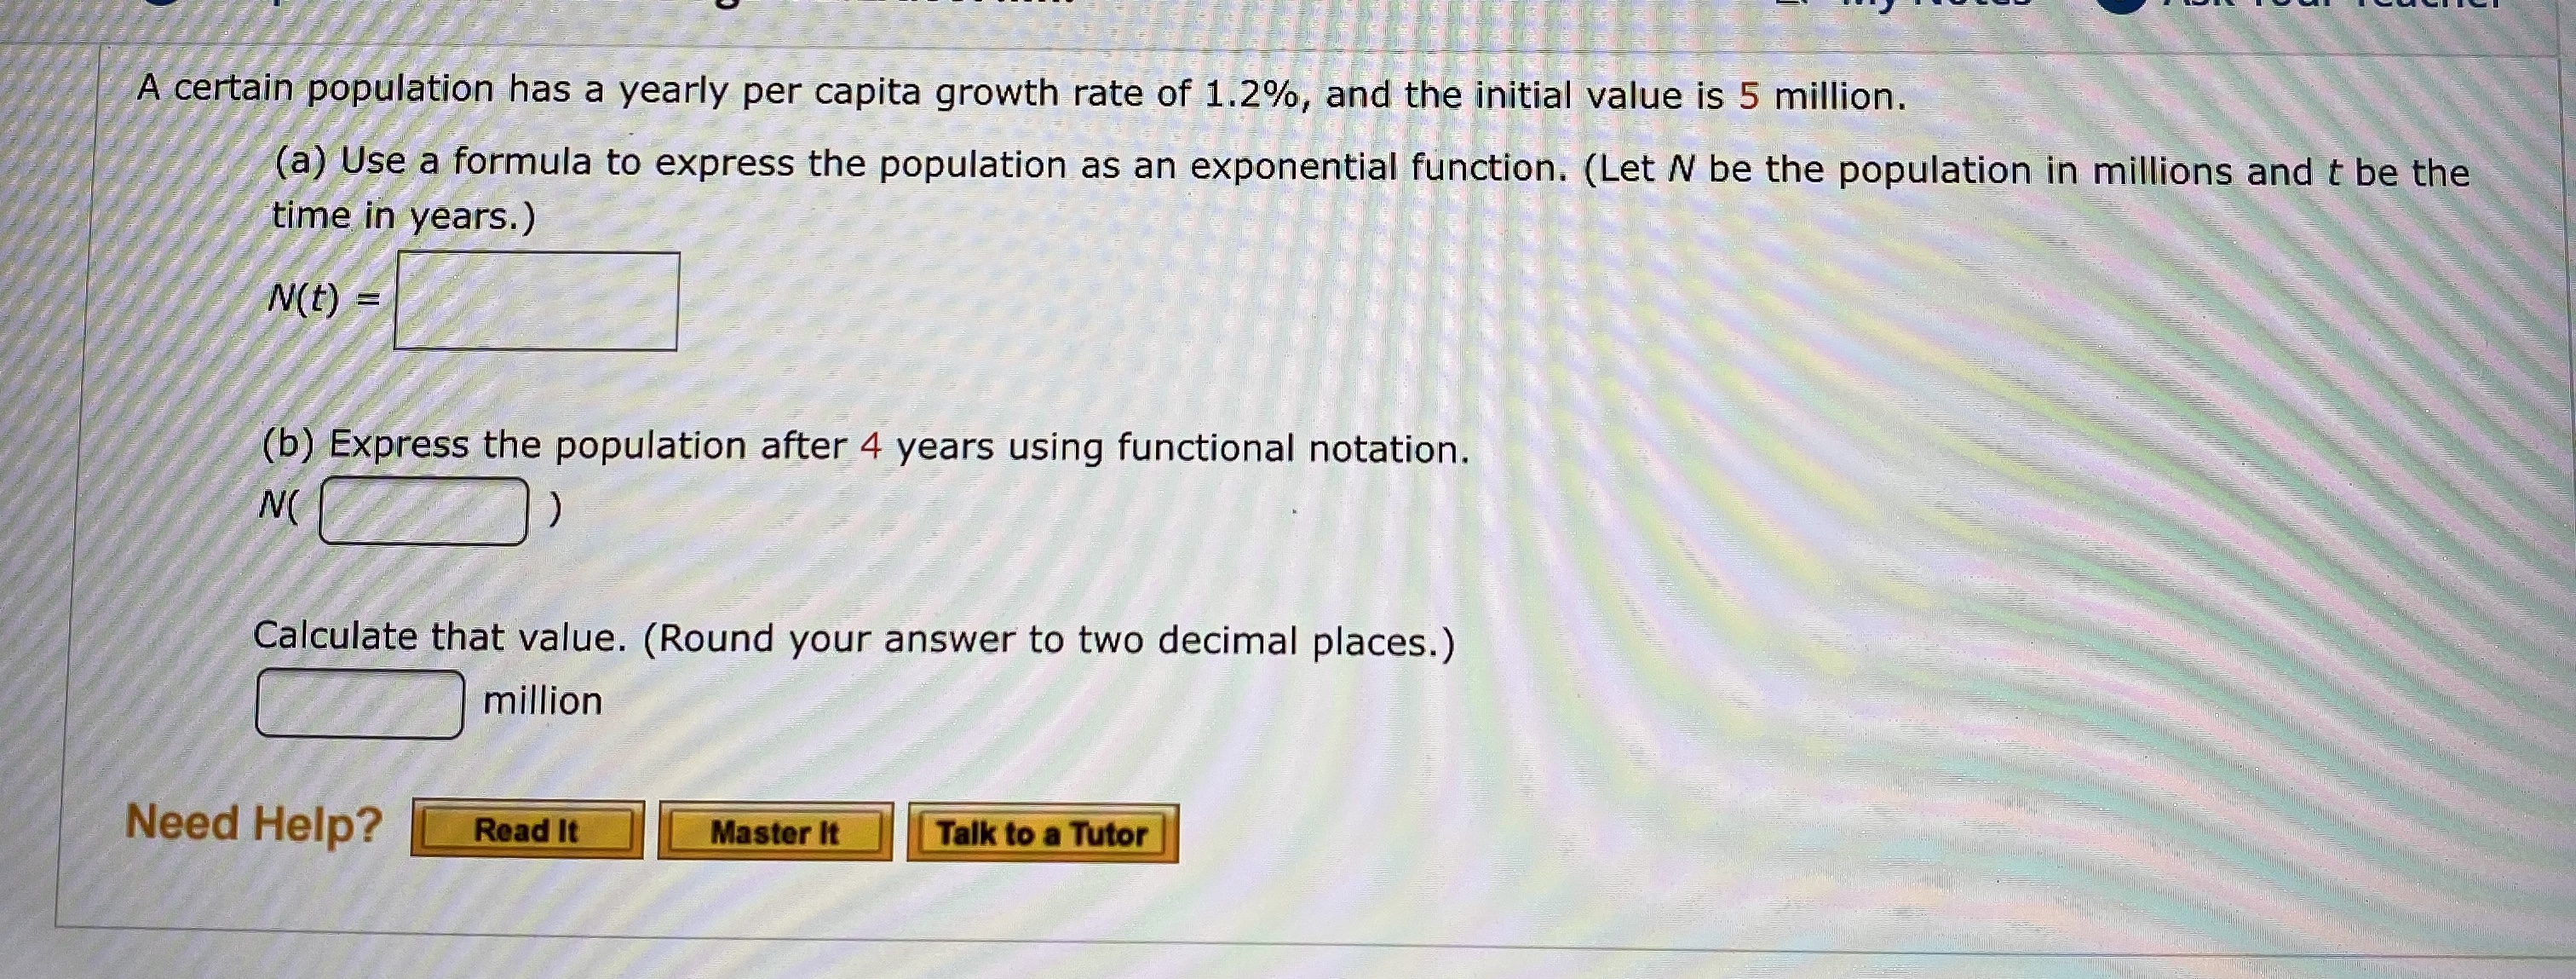 A certain population has a yearly per capita growth rate of 1.2%, and the initial value is 5 million. (a) Use a formula to express the population as an exponential function. (Let N be the population in millions and t be the time in years.) N(t) (b) Express the population after 4 years using functional notation. N( Calculate that value. (Round your answer to two decimal places.) million Need Help? Read It Talk to a Tutor Master It